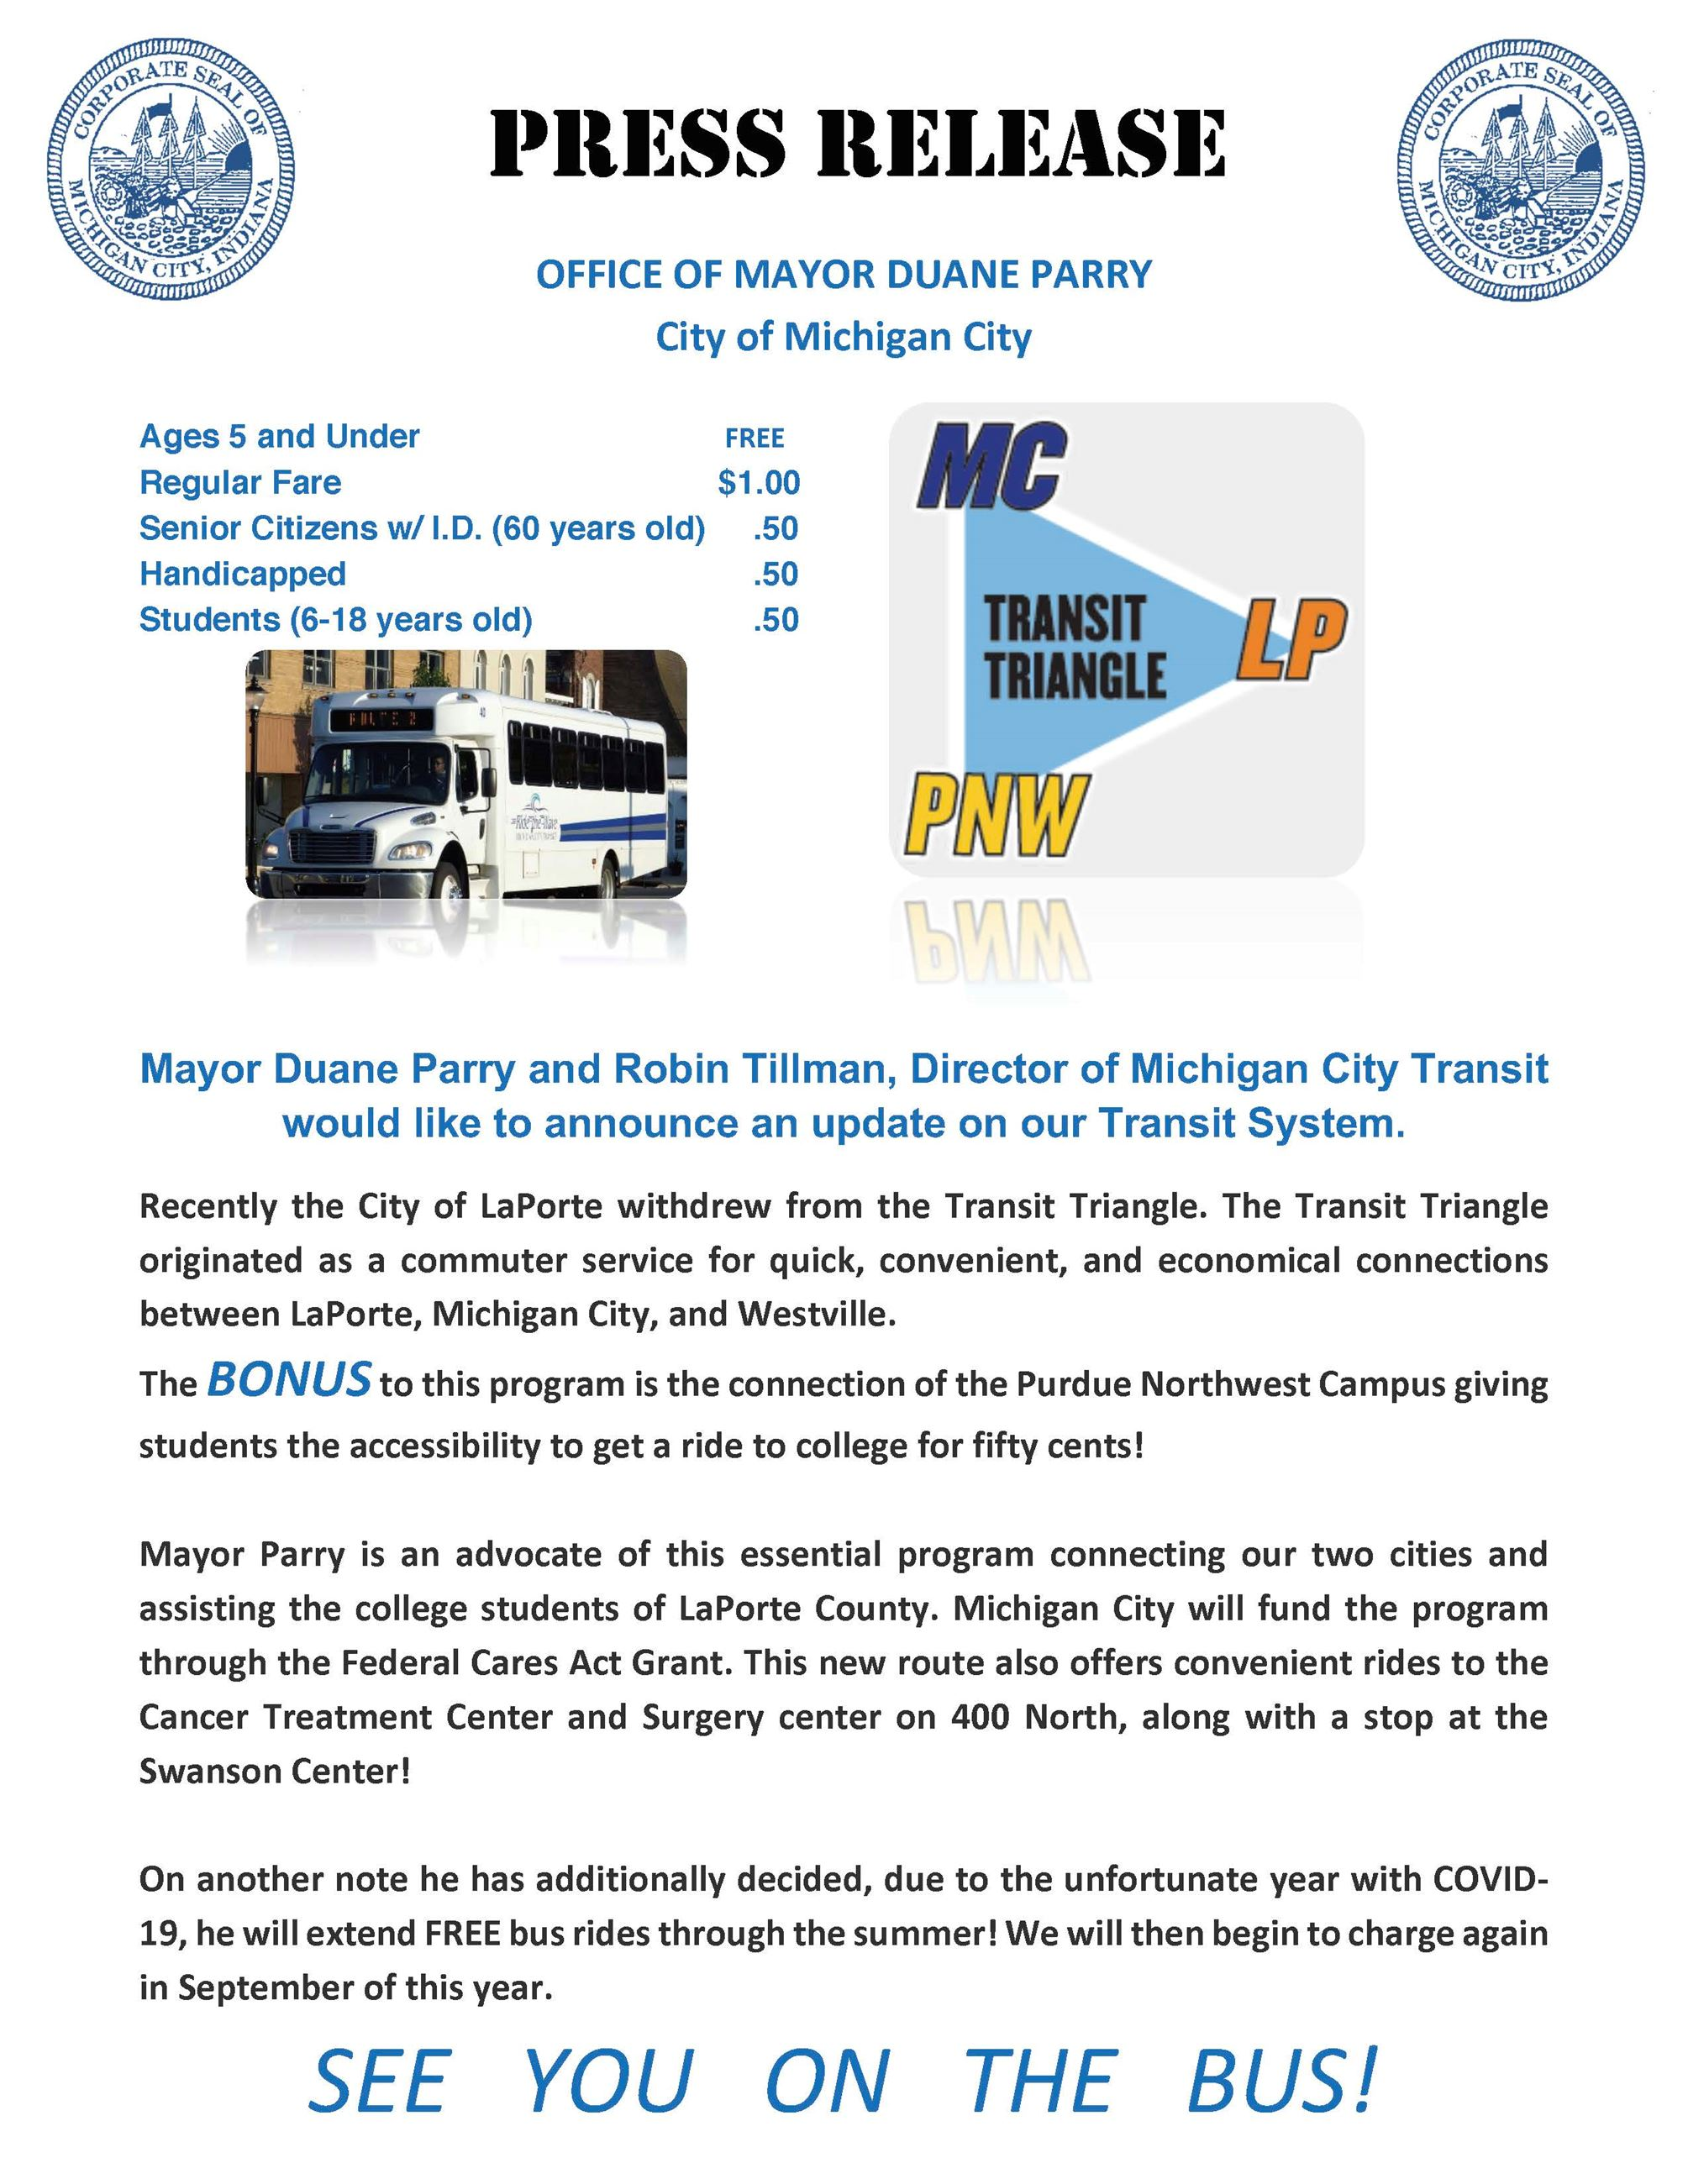 PRESS RELEASE FOR TRANSIT